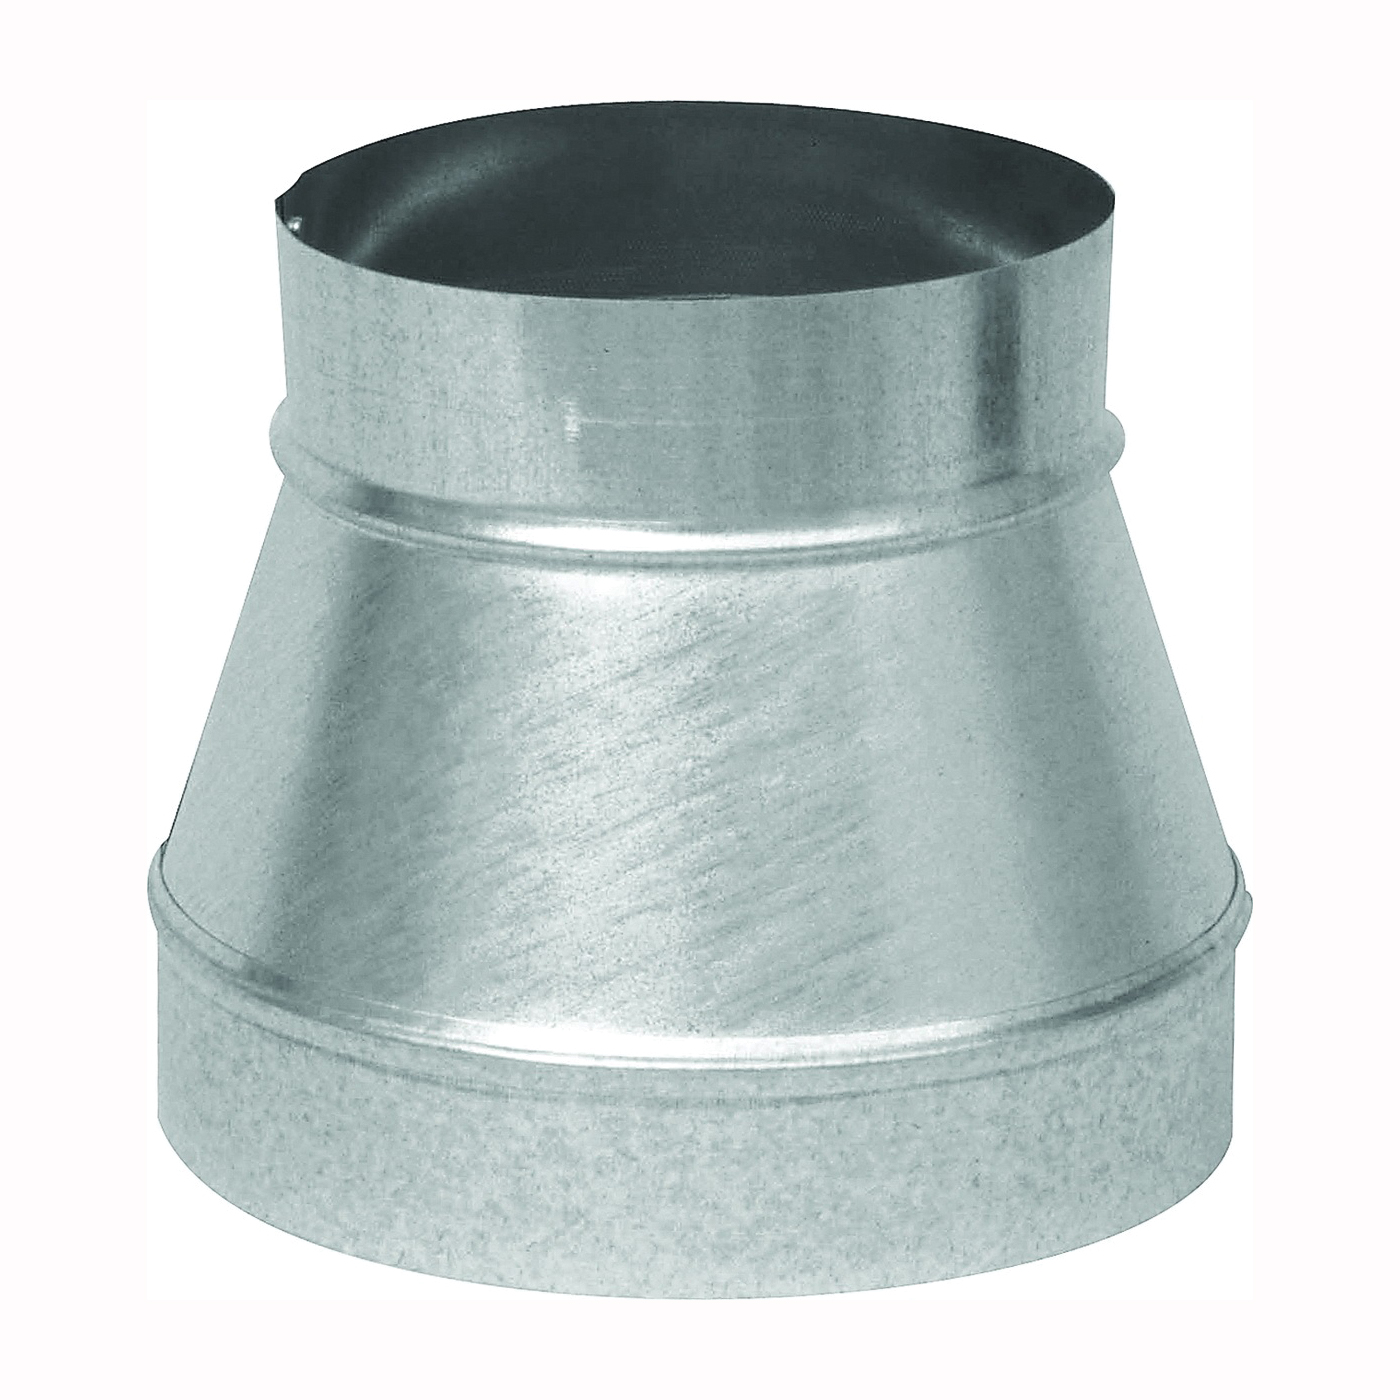 Picture of Imperial GV1198 Stove Pipe Reducer, 5 x 4 in, 26 ga Thick Wall, Black, Galvanized